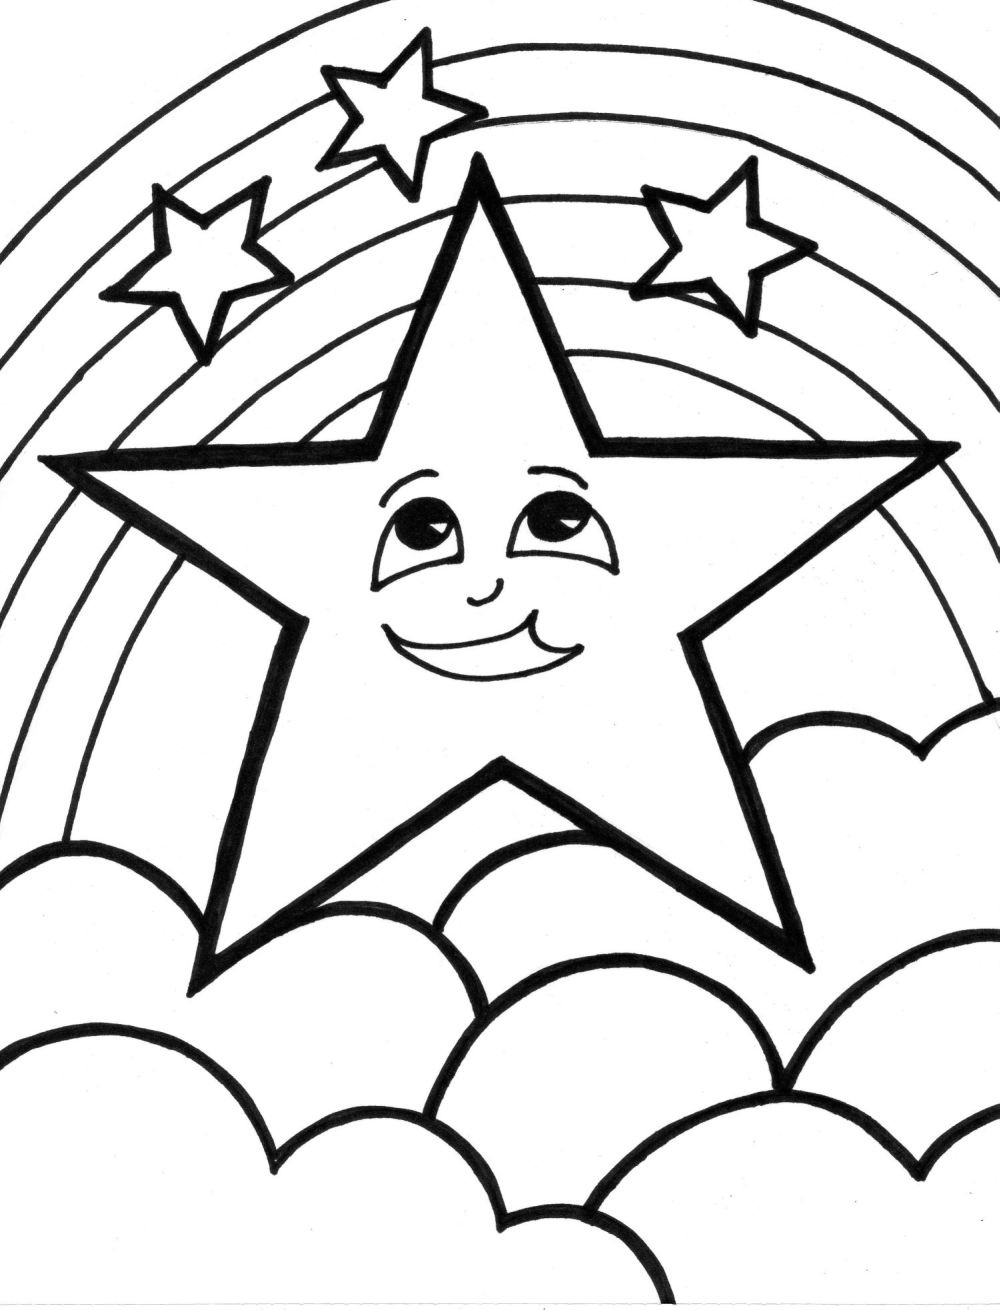 stars coloring page star coloring pages for preschoolers coloring home page stars coloring